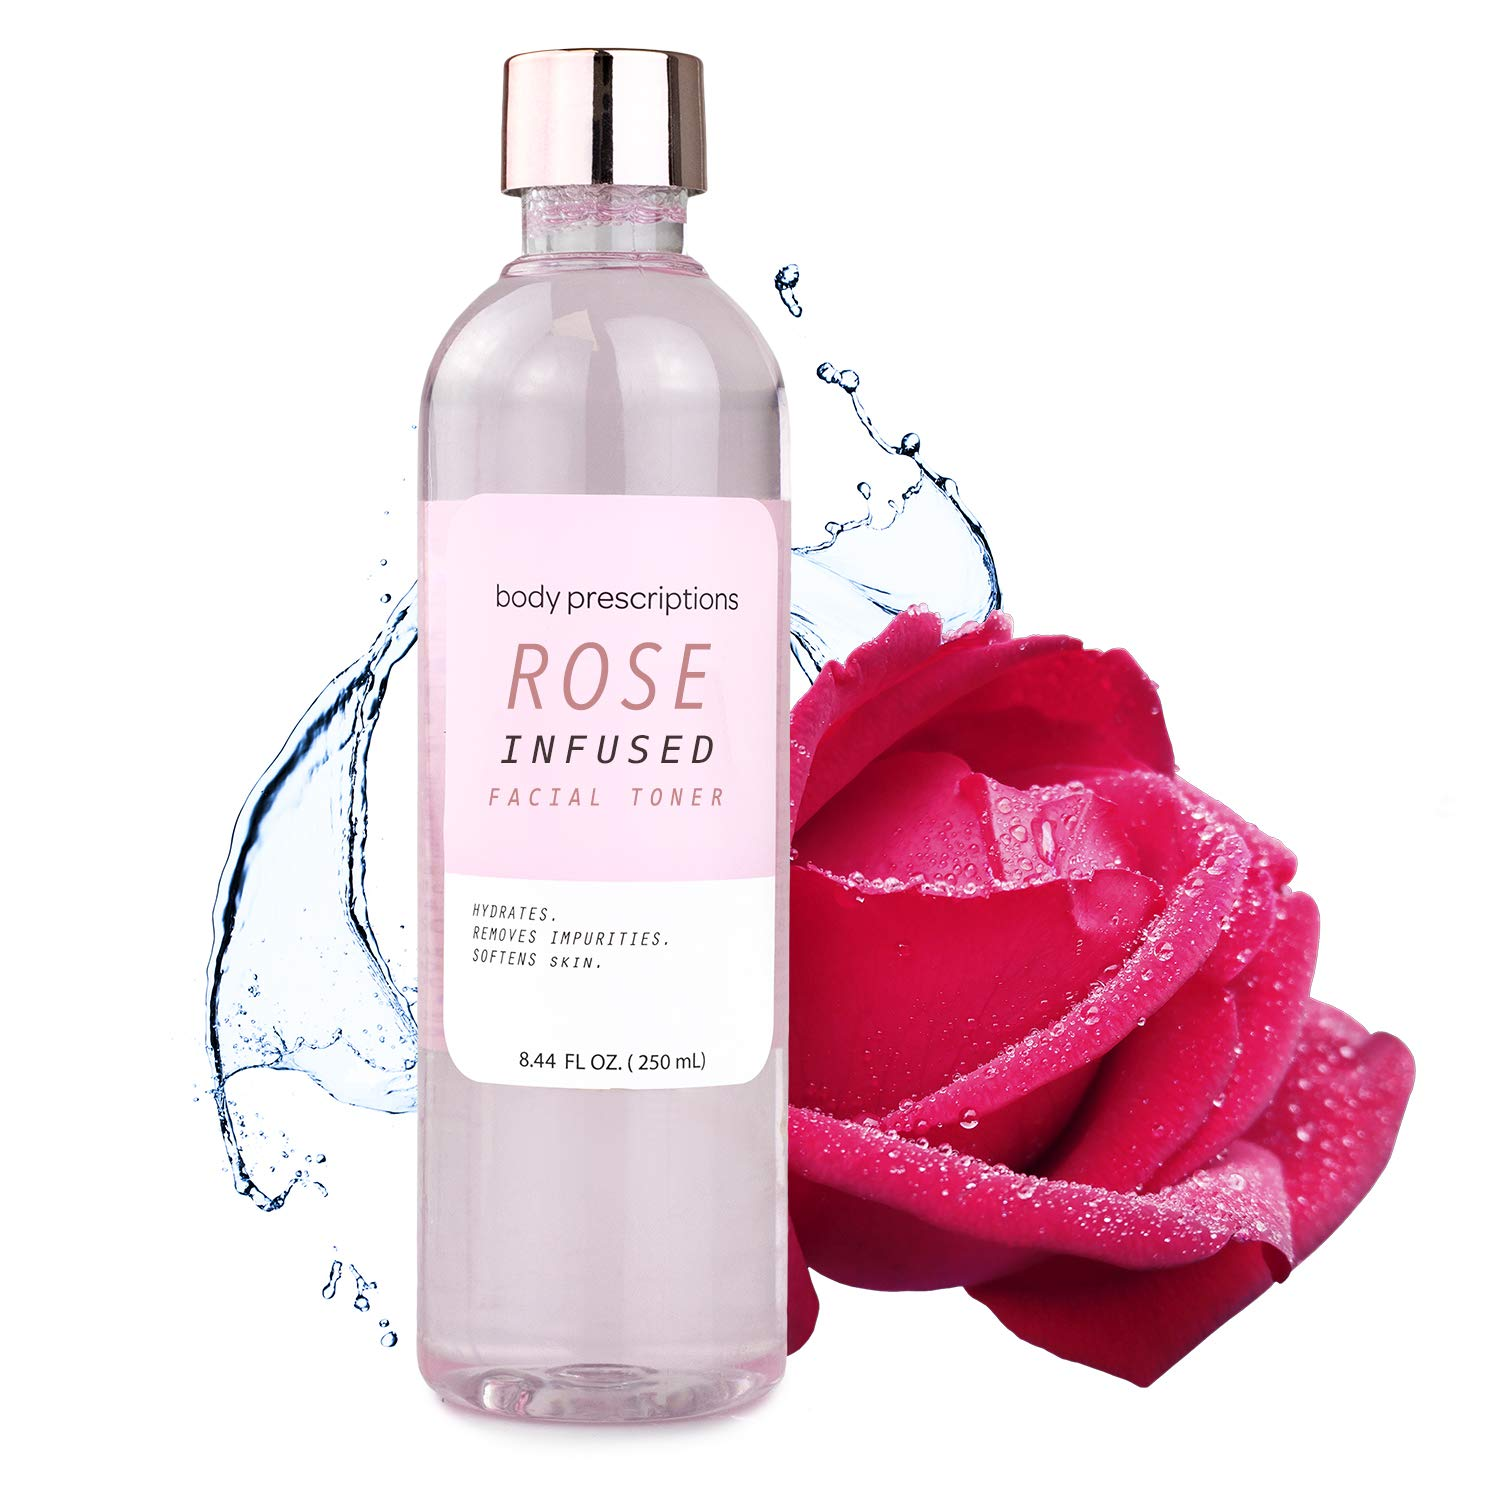 Body Prescriptions Rose Infused Toner for Smooth Skin, Facial Toner for Women, Radiant Cleanser, Hydrating Toner, Removes Impurities, Softens Skin 8.4 Fl Oz